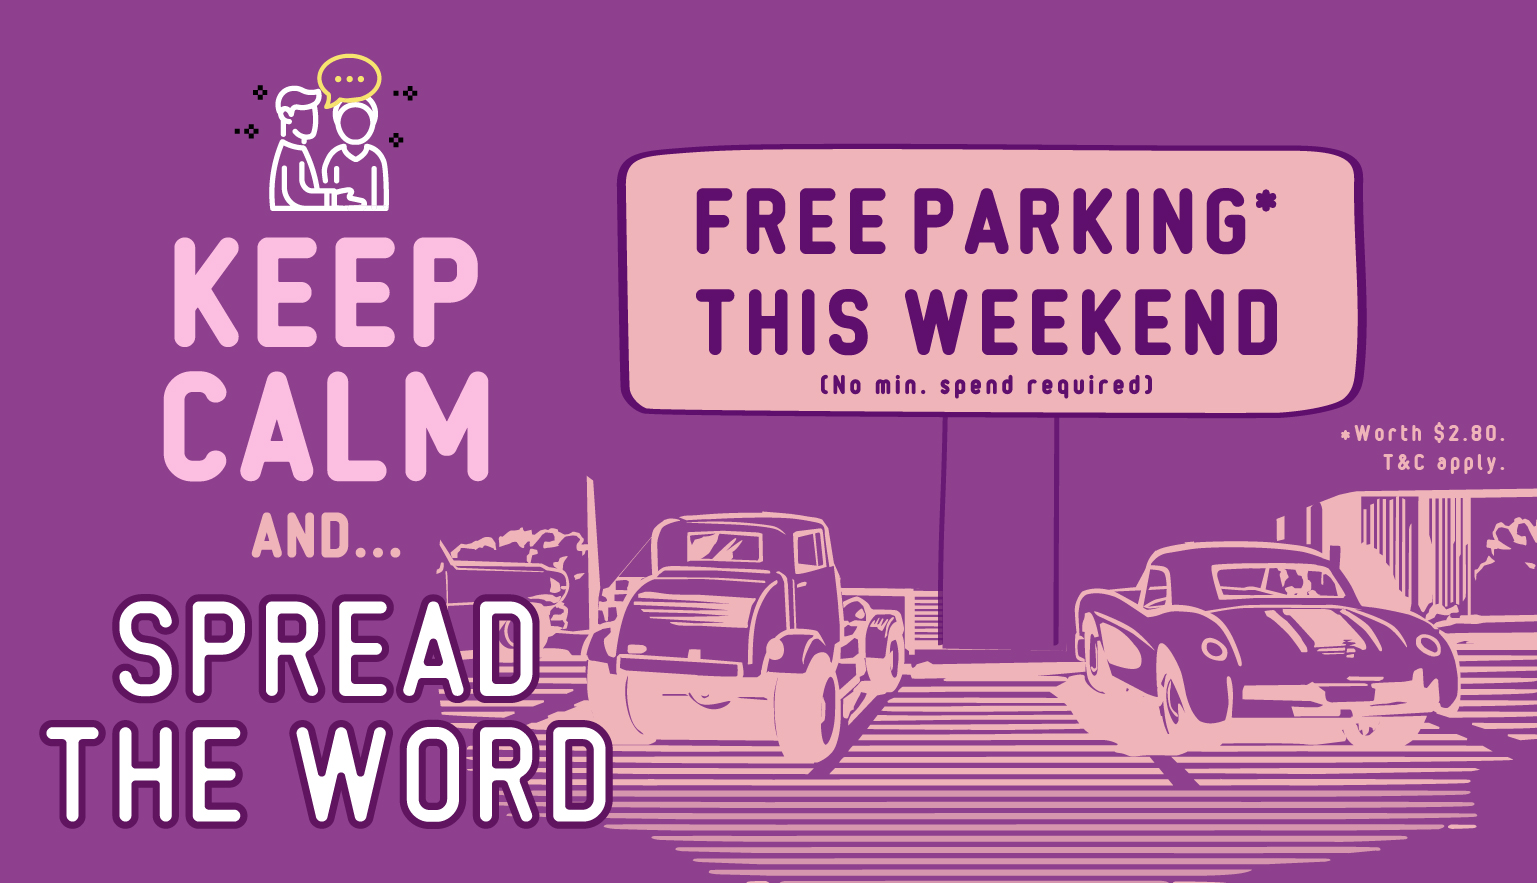 Free parking this weekend